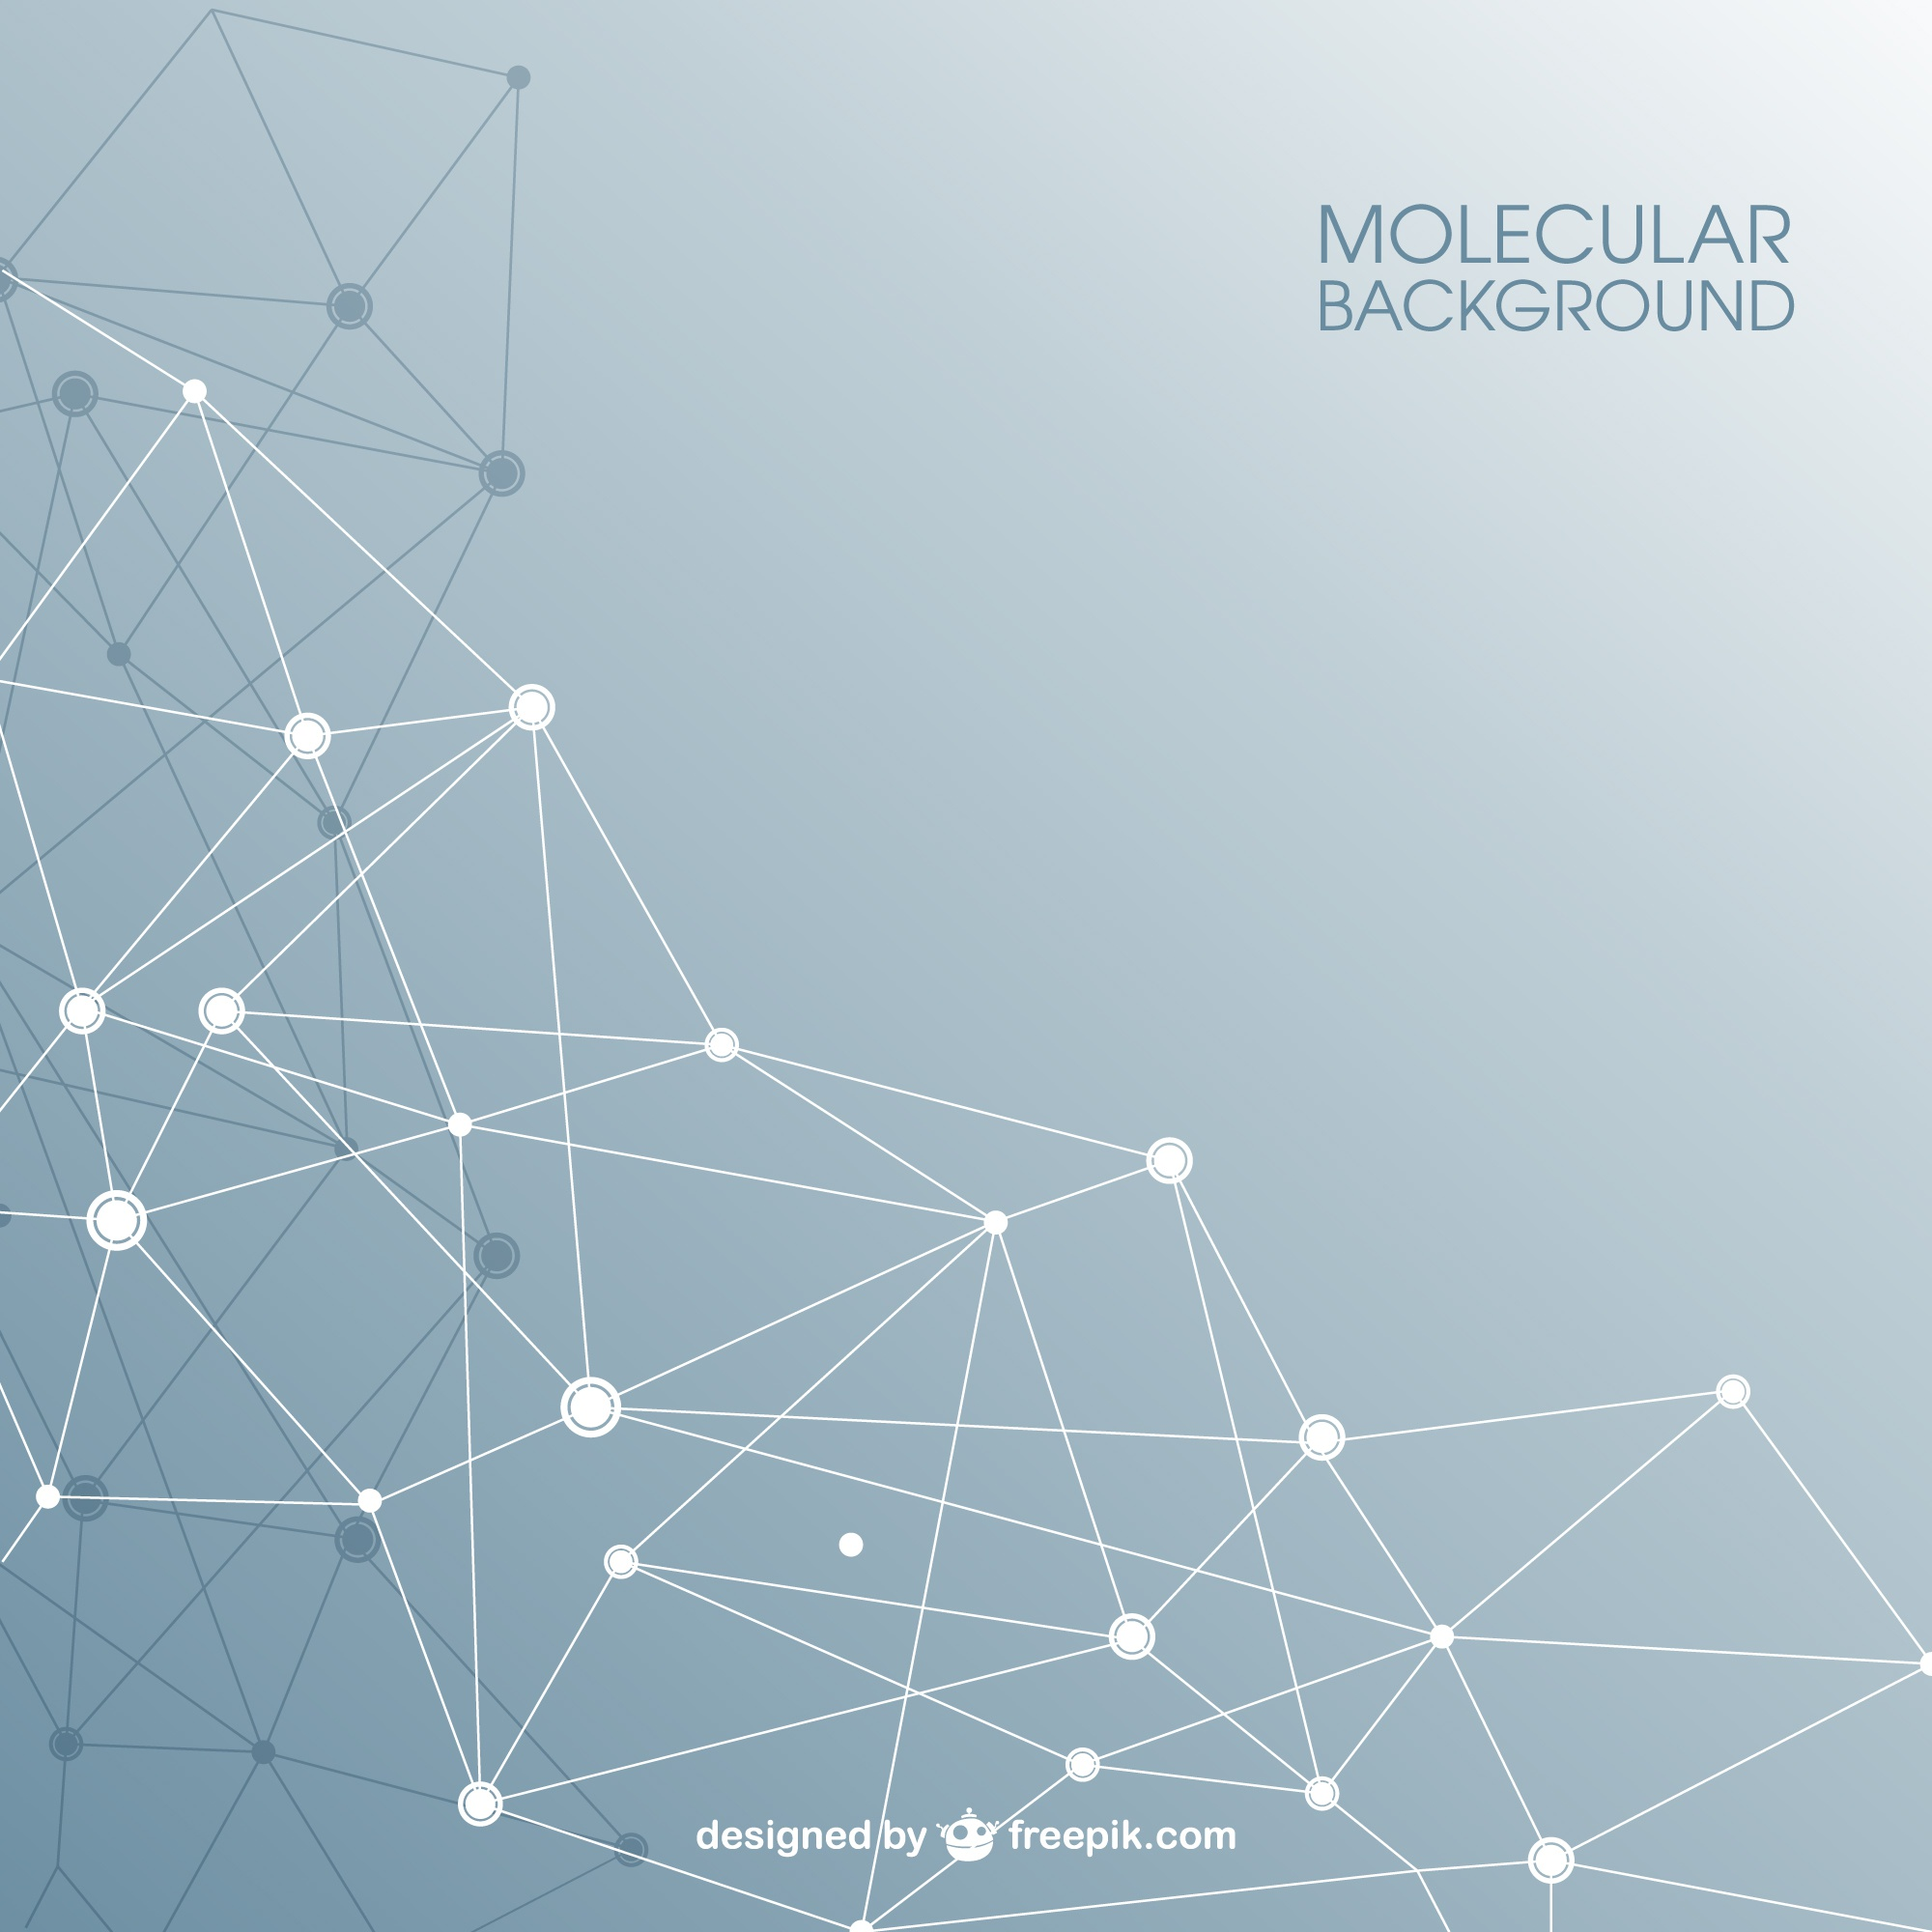 Molecular structure abstract background